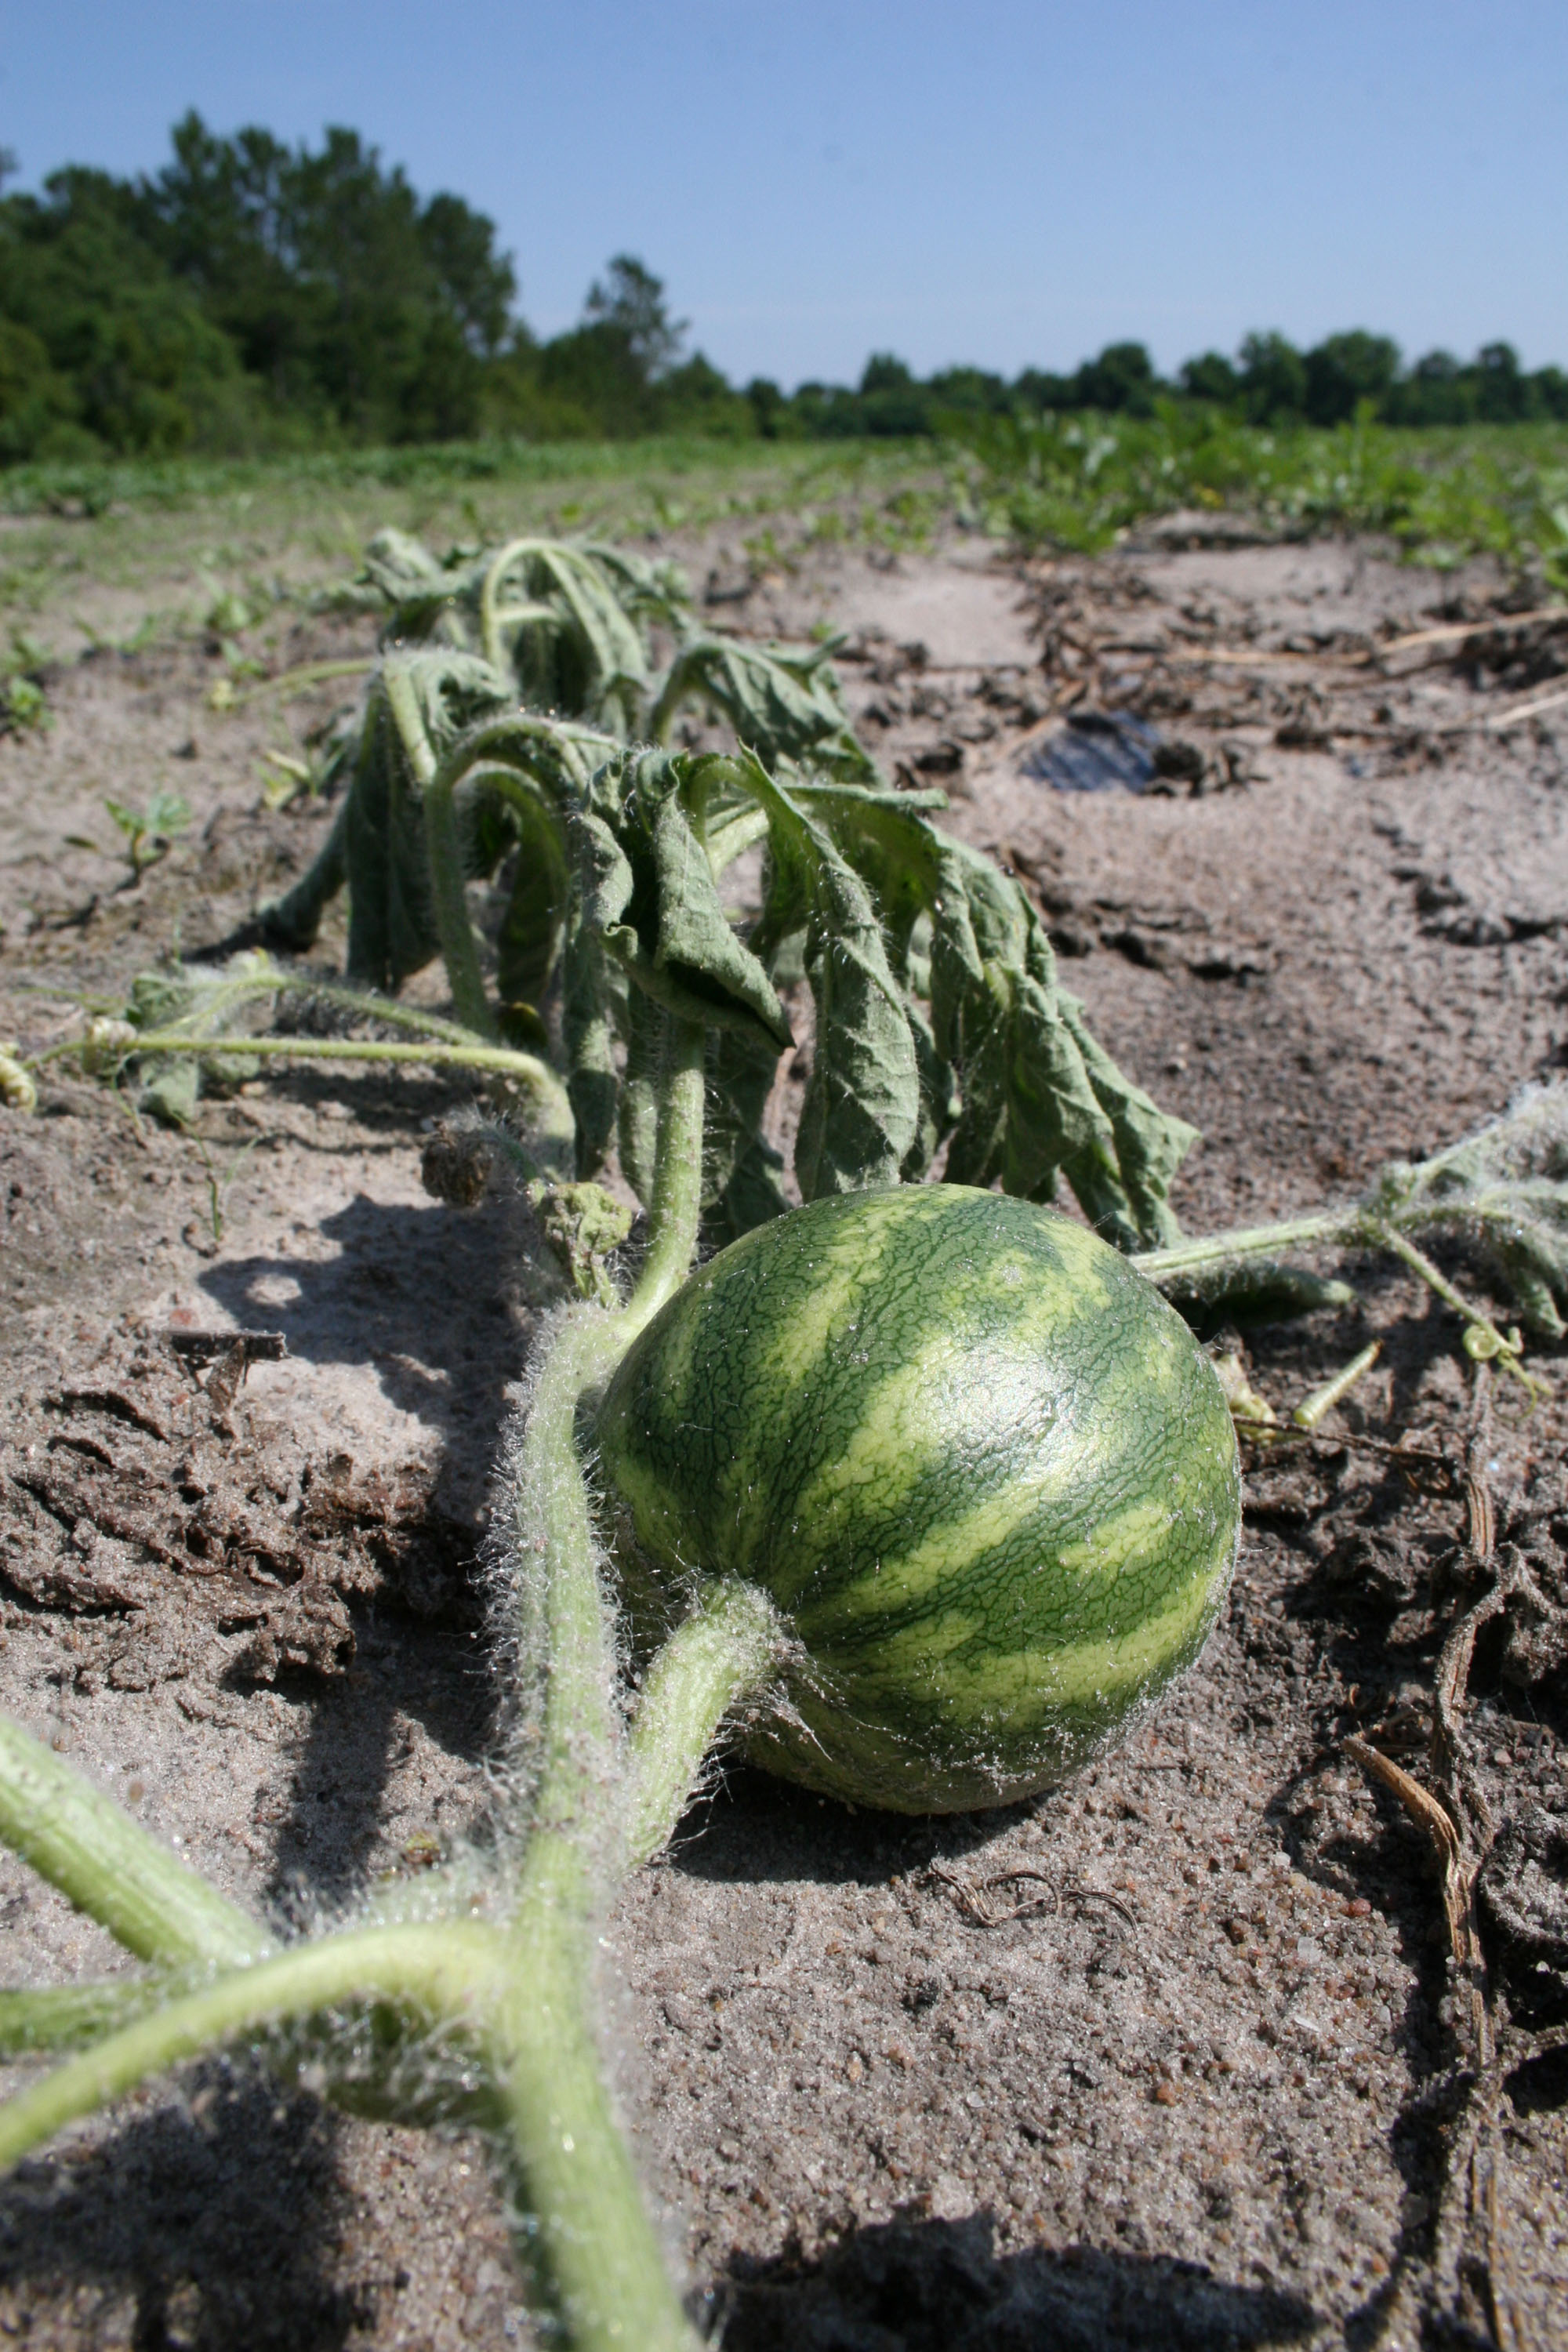 Fusarium wilt, a deadly fungal disease that lives in the soil, attacks a watermelon vine in a field in Berrien County.